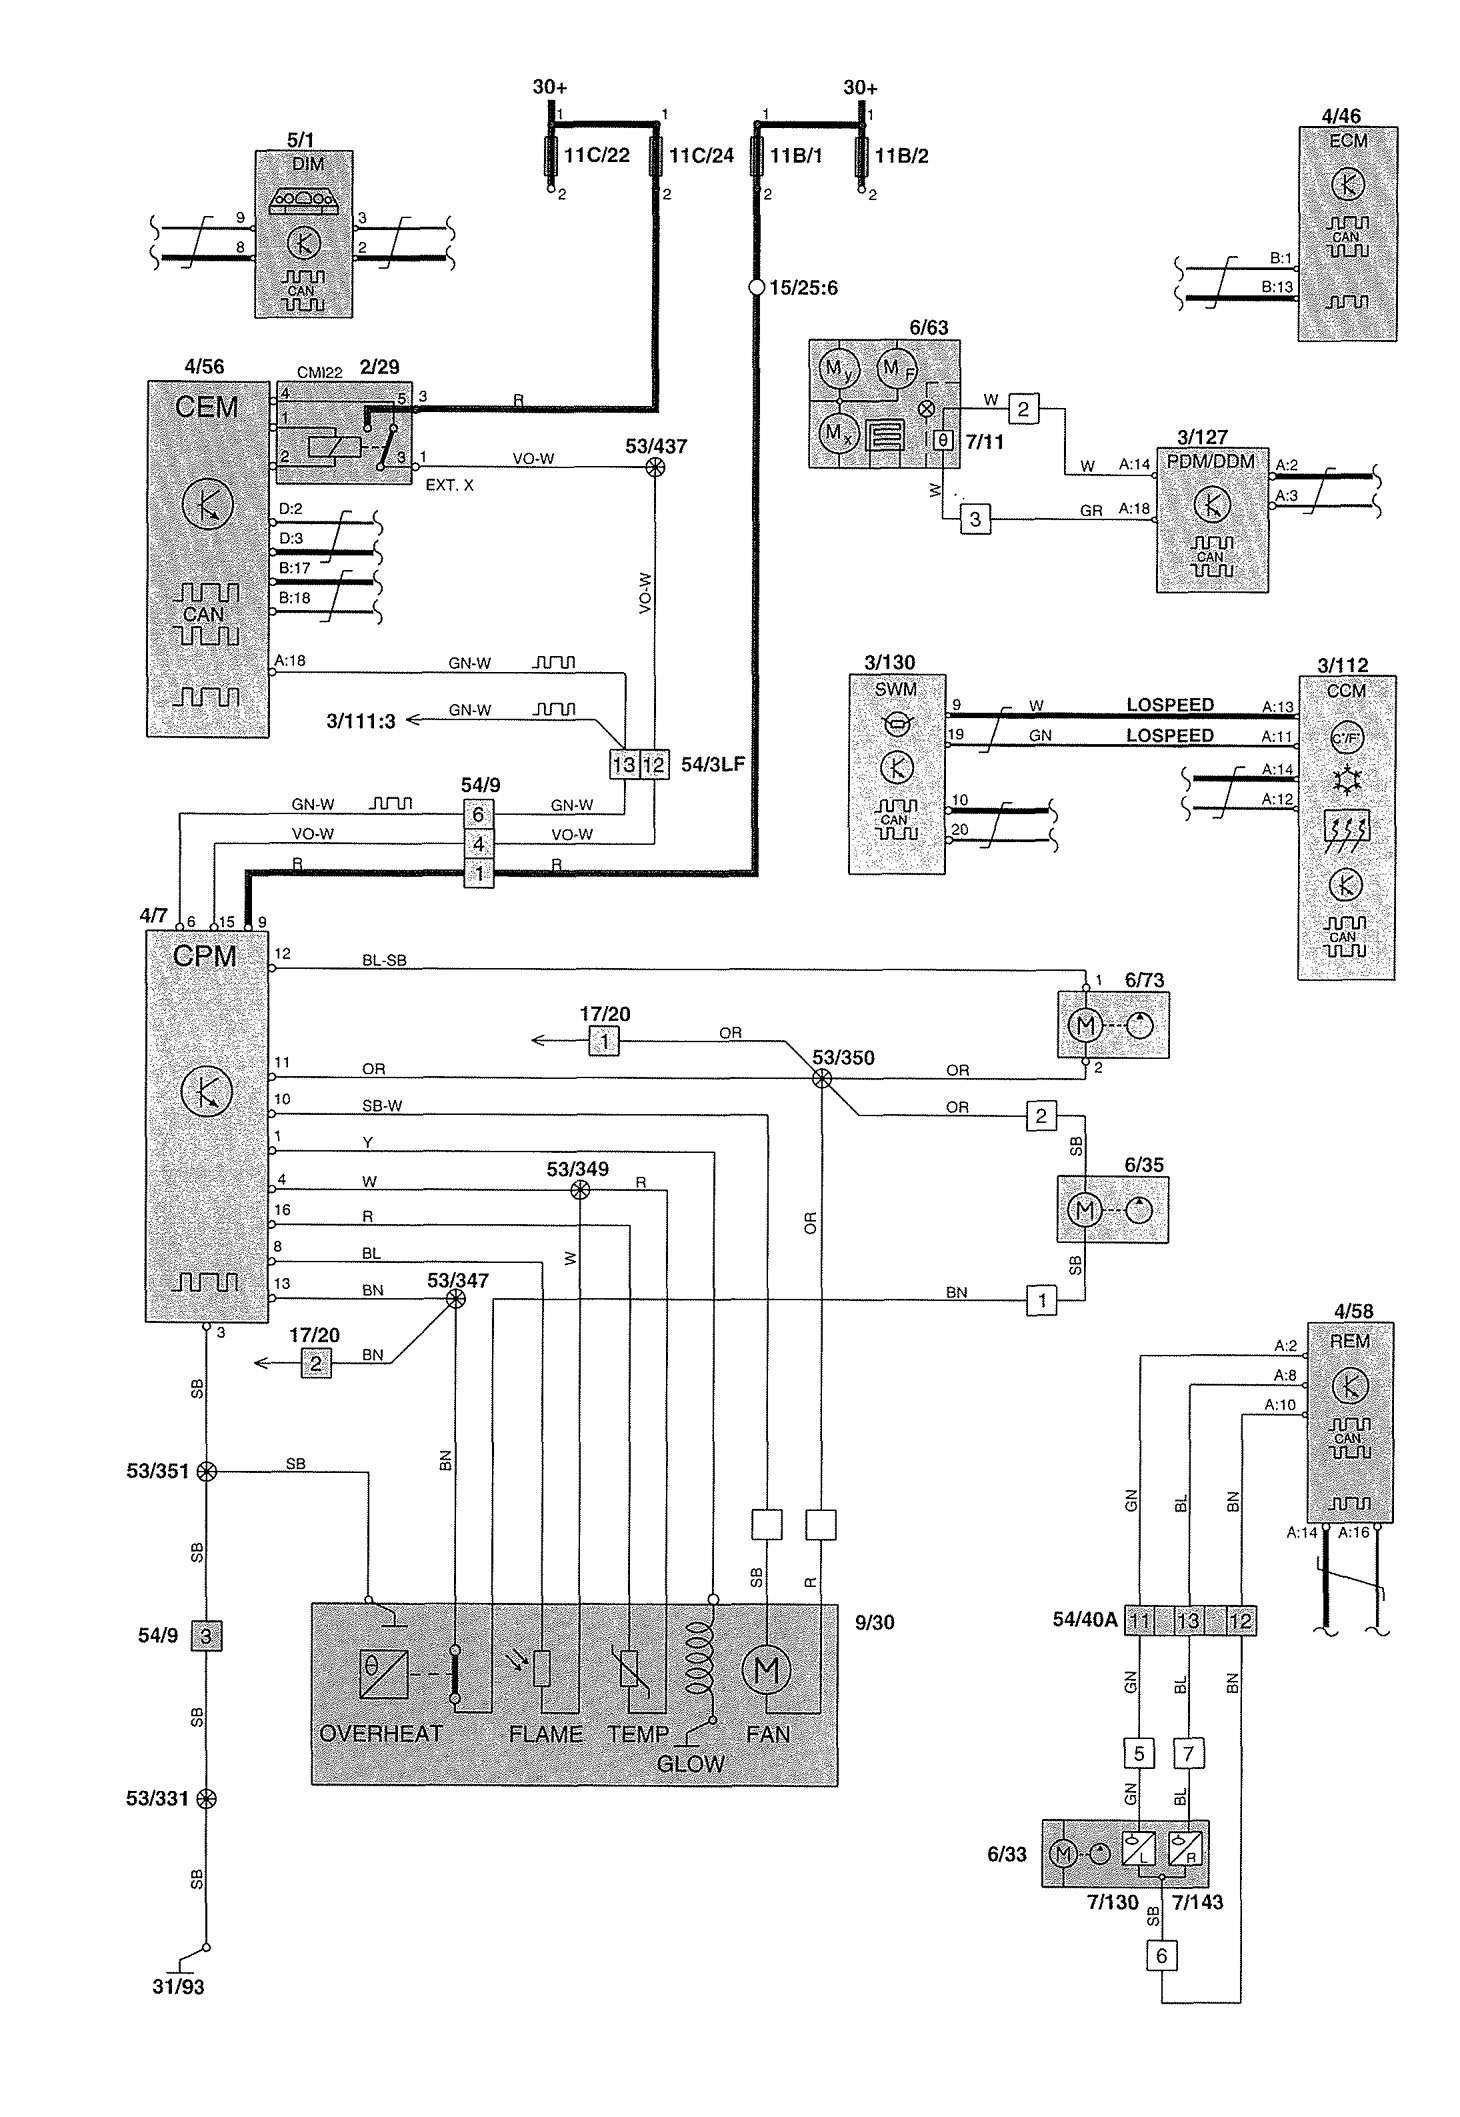 volvo v70  2002  - wiring diagrams - heater